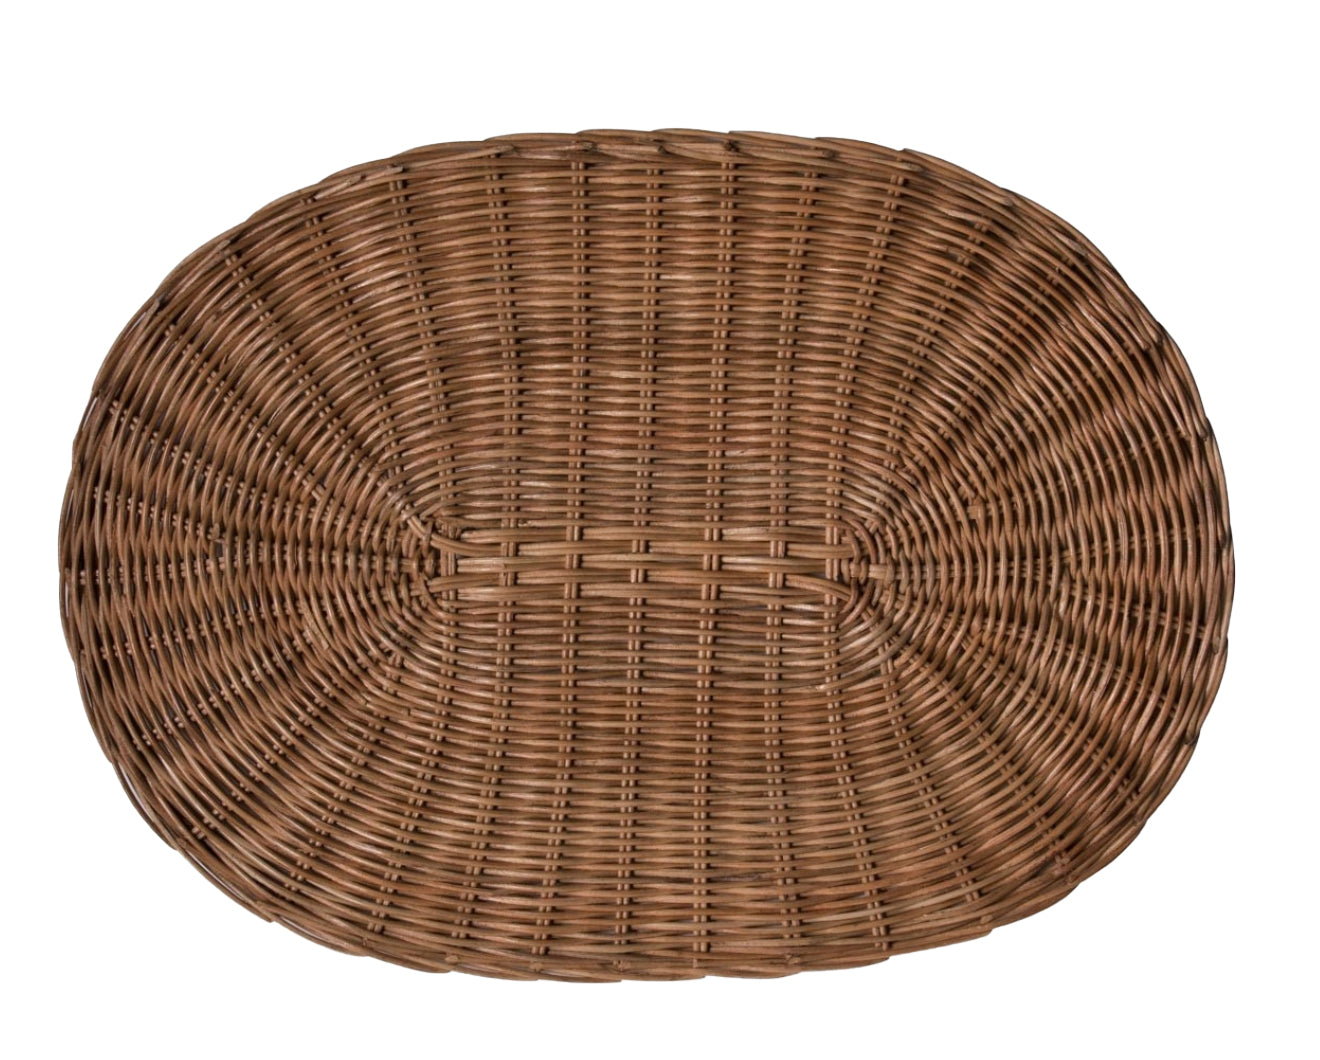 Tisbury Oval Honey Rattan Placemat - Amy Berry Home